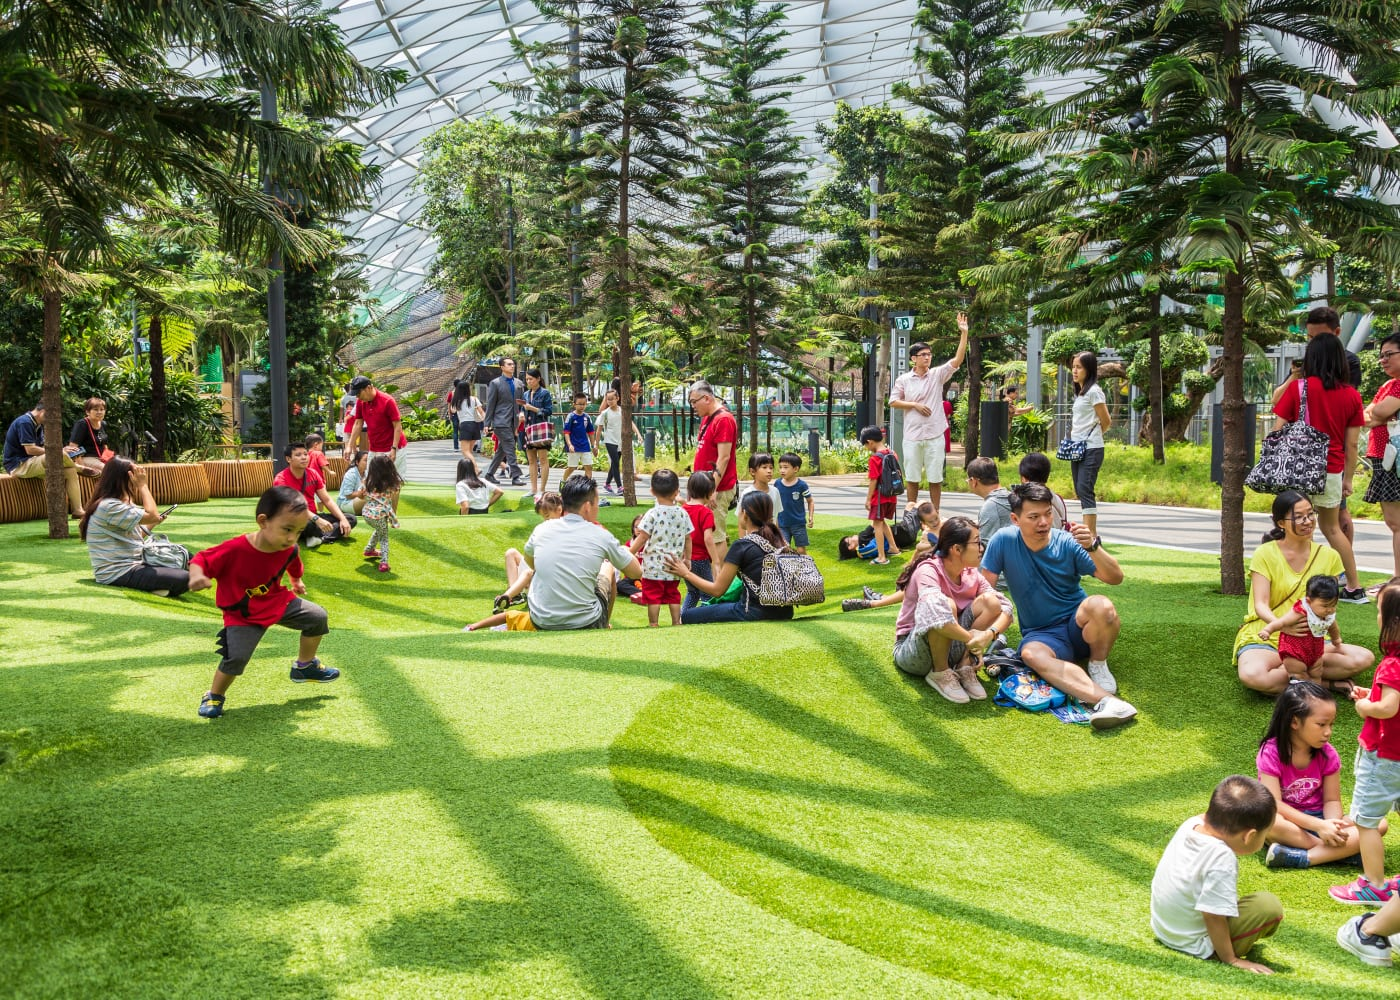 pram friendly canopy park jewel | Best playgrounds and parks in Singapore for kids of all ages